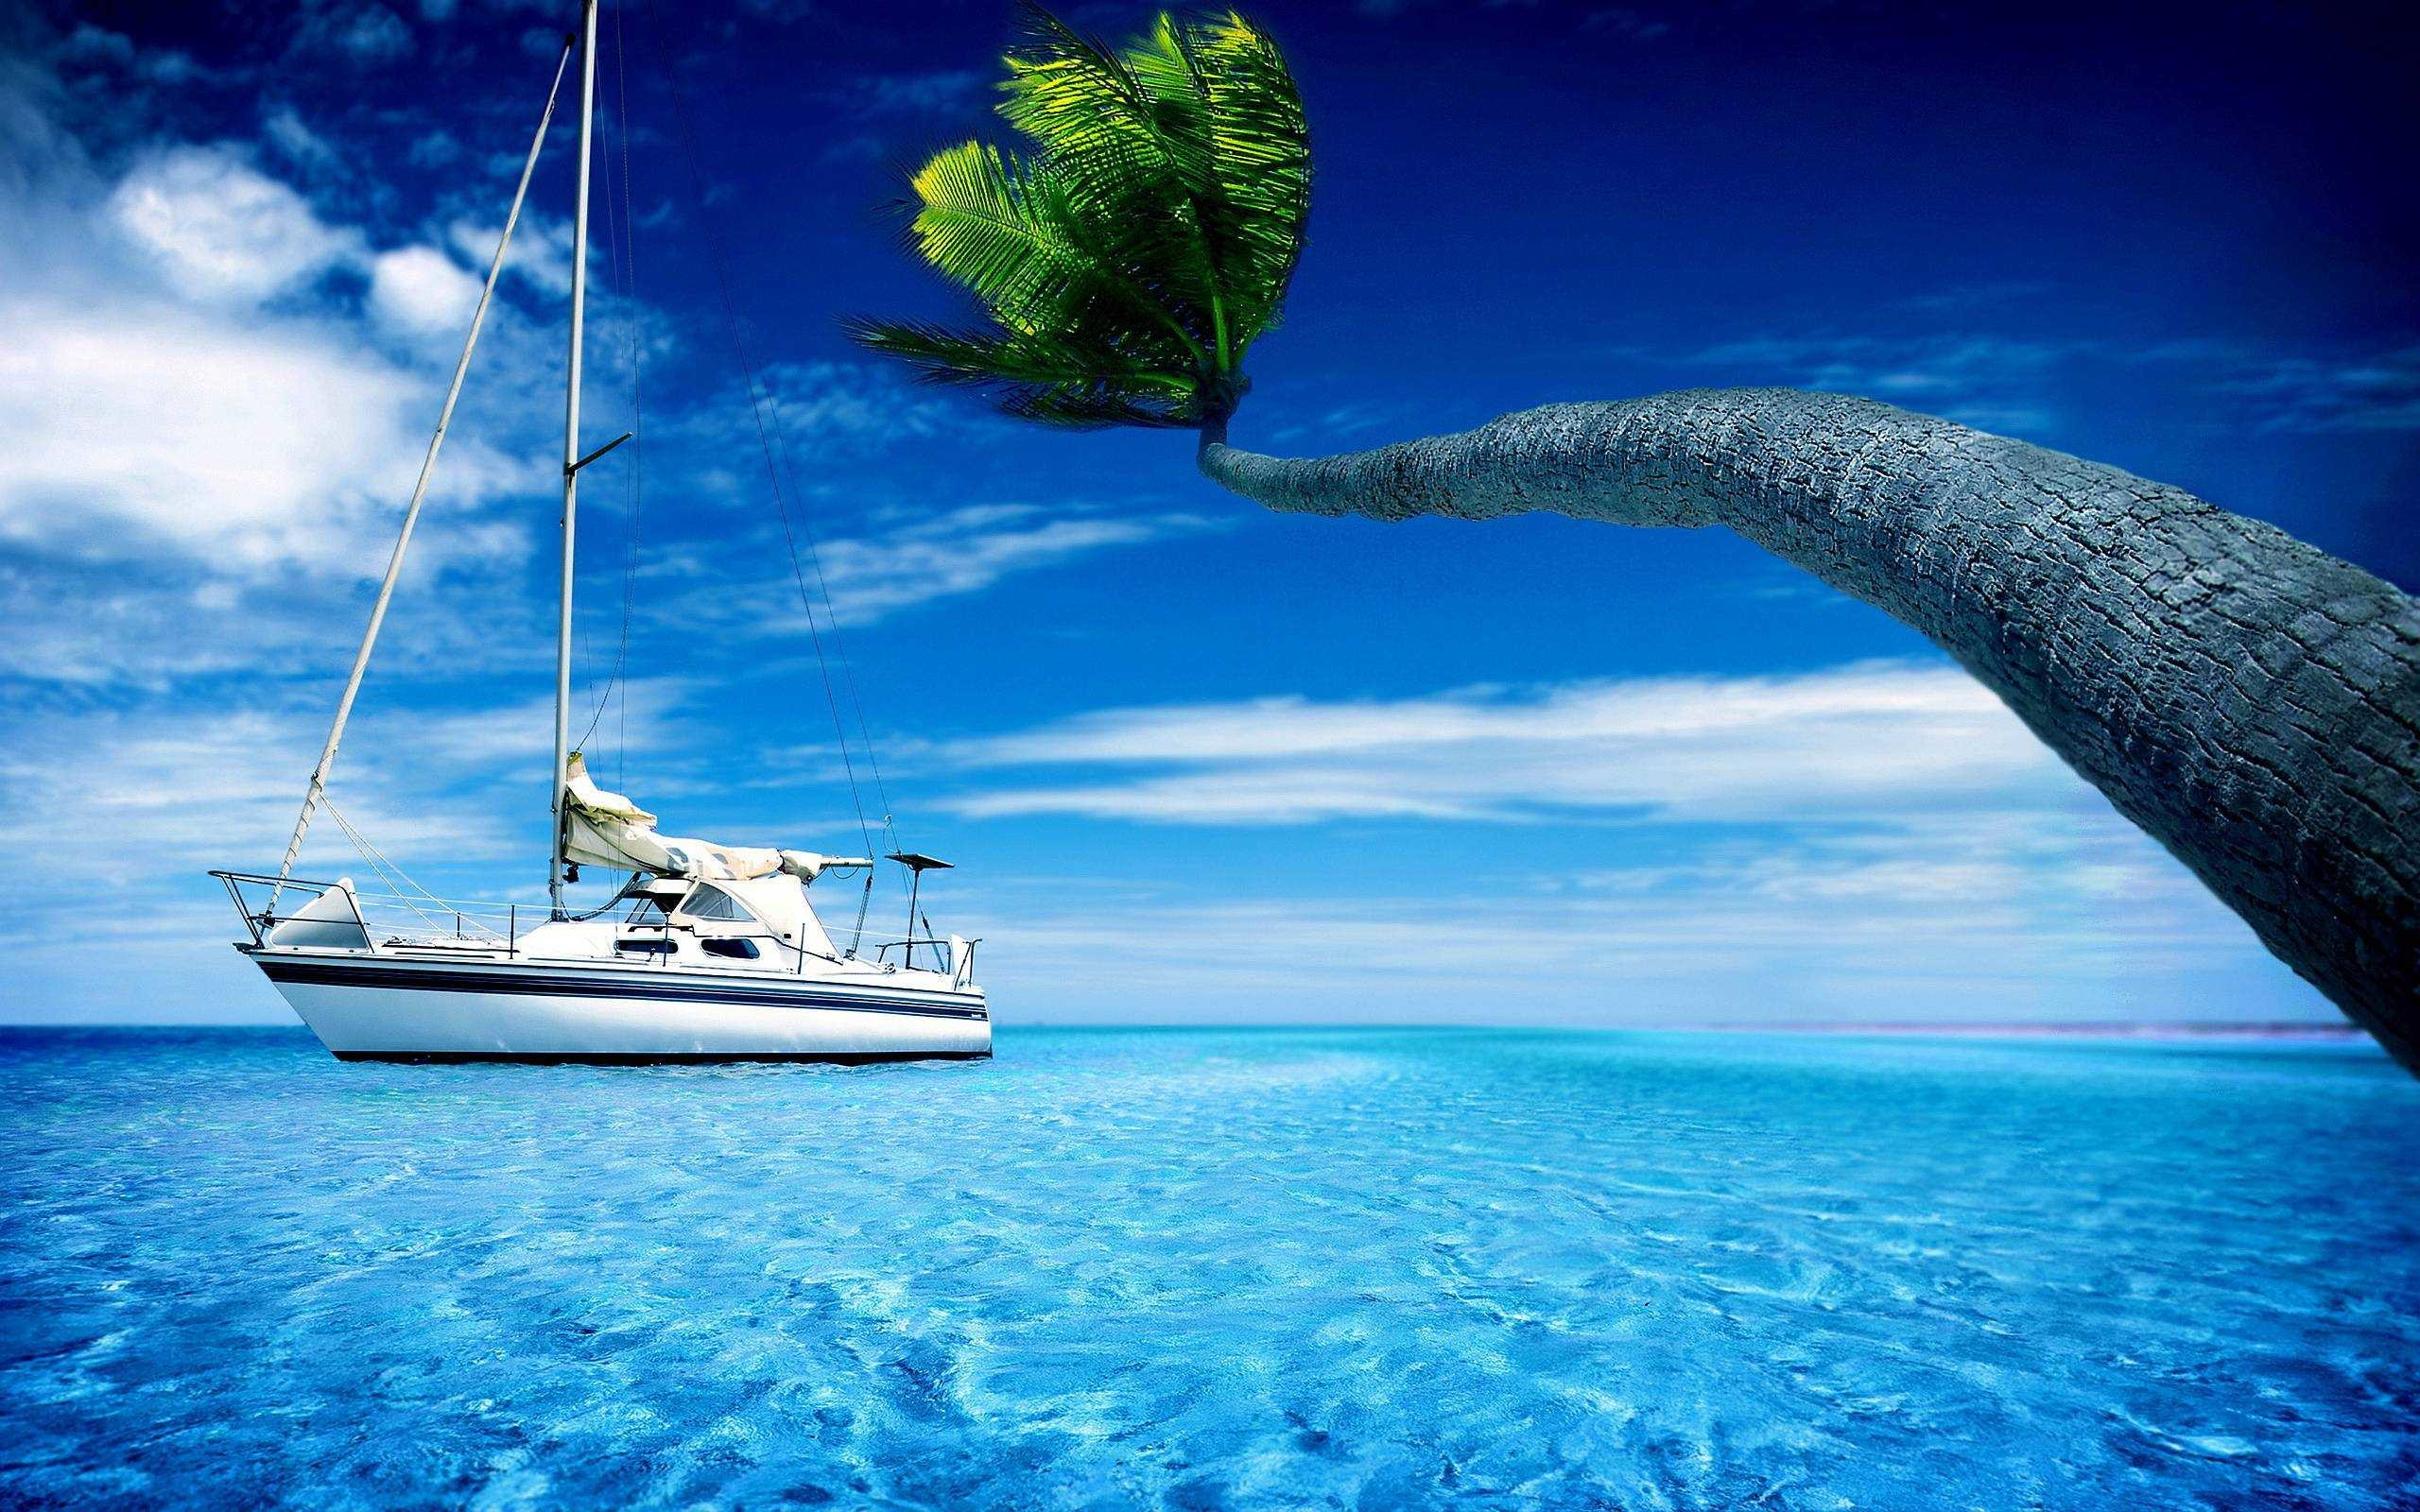 Res: 2560x1600, Nature Sea With Boat Wallpaper Hd Full Pics For Iphone Ocean Epic Car